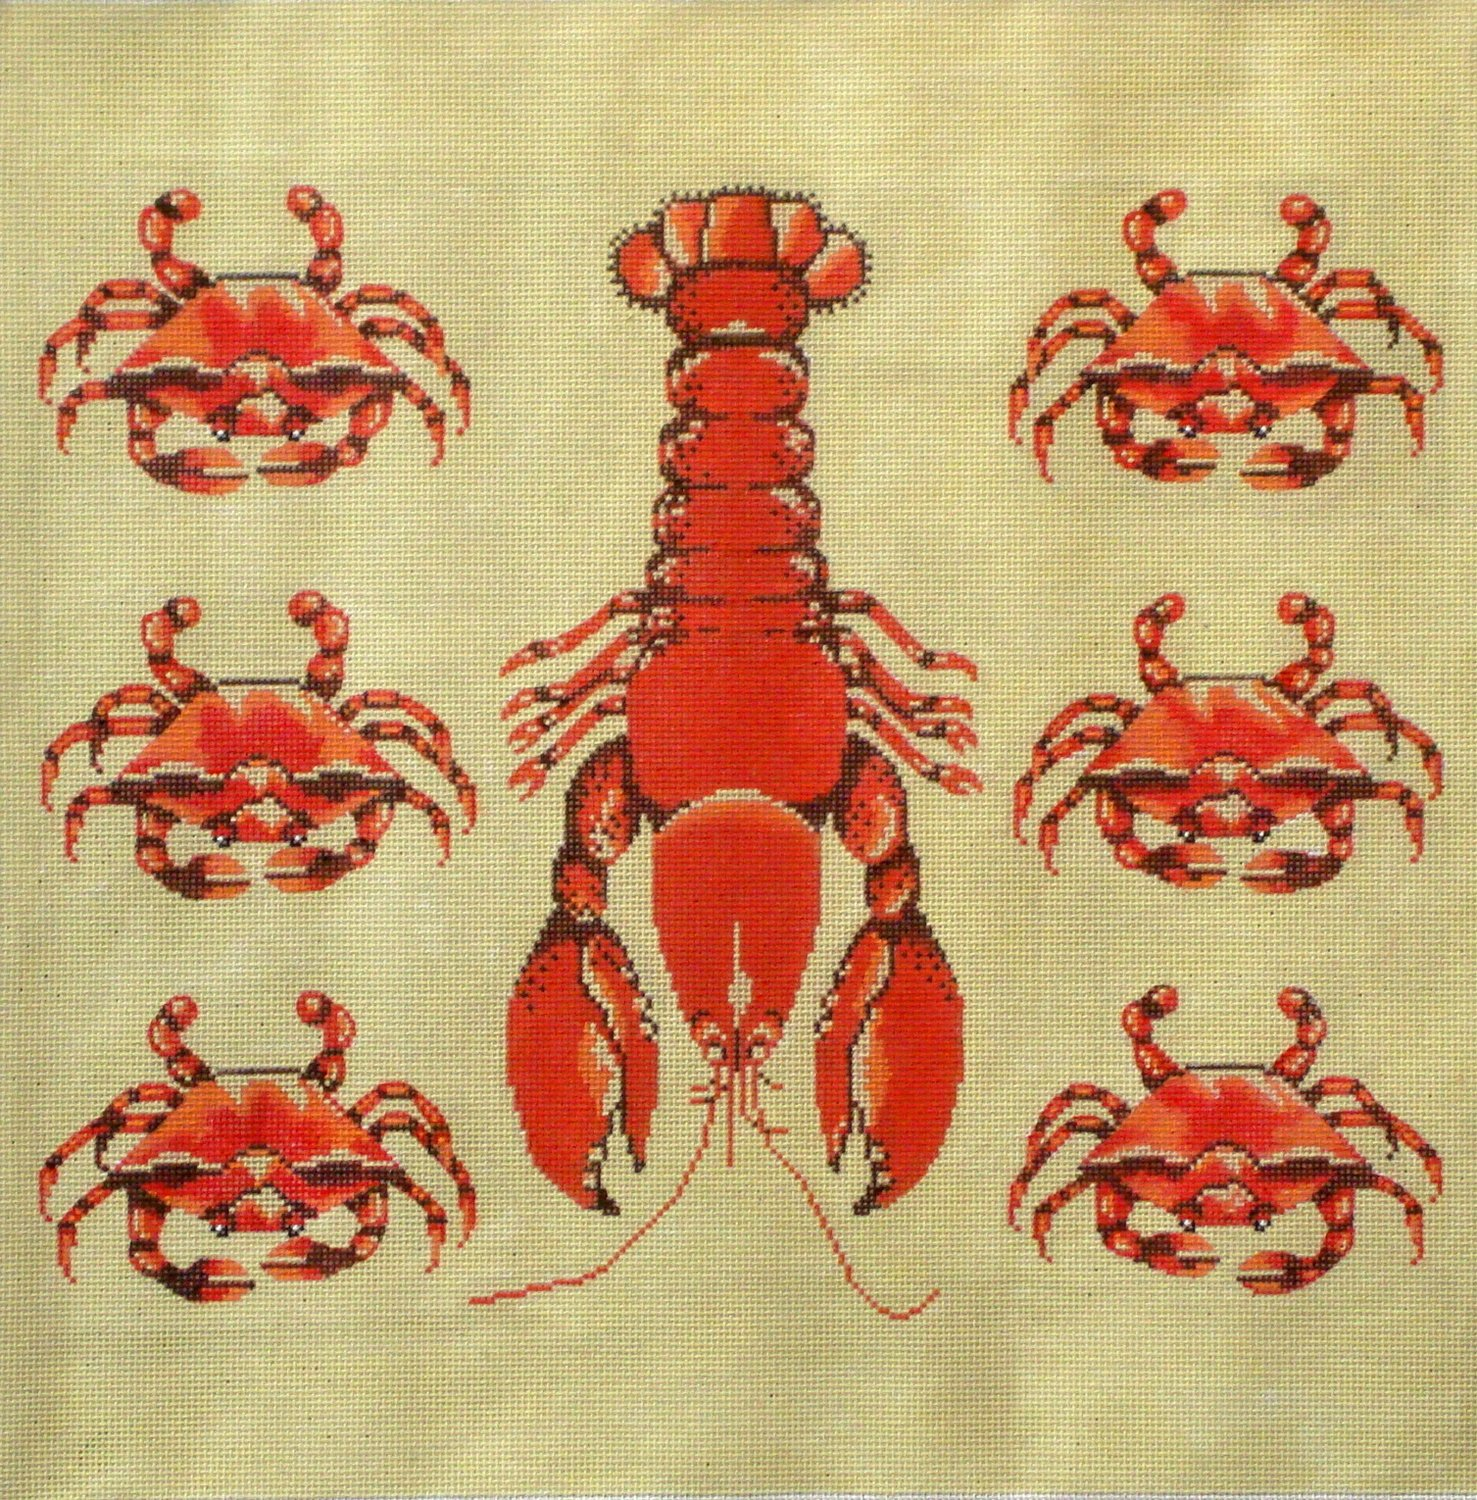 Lobster and Crabs  (Exclusive to Needlepoint Alley)